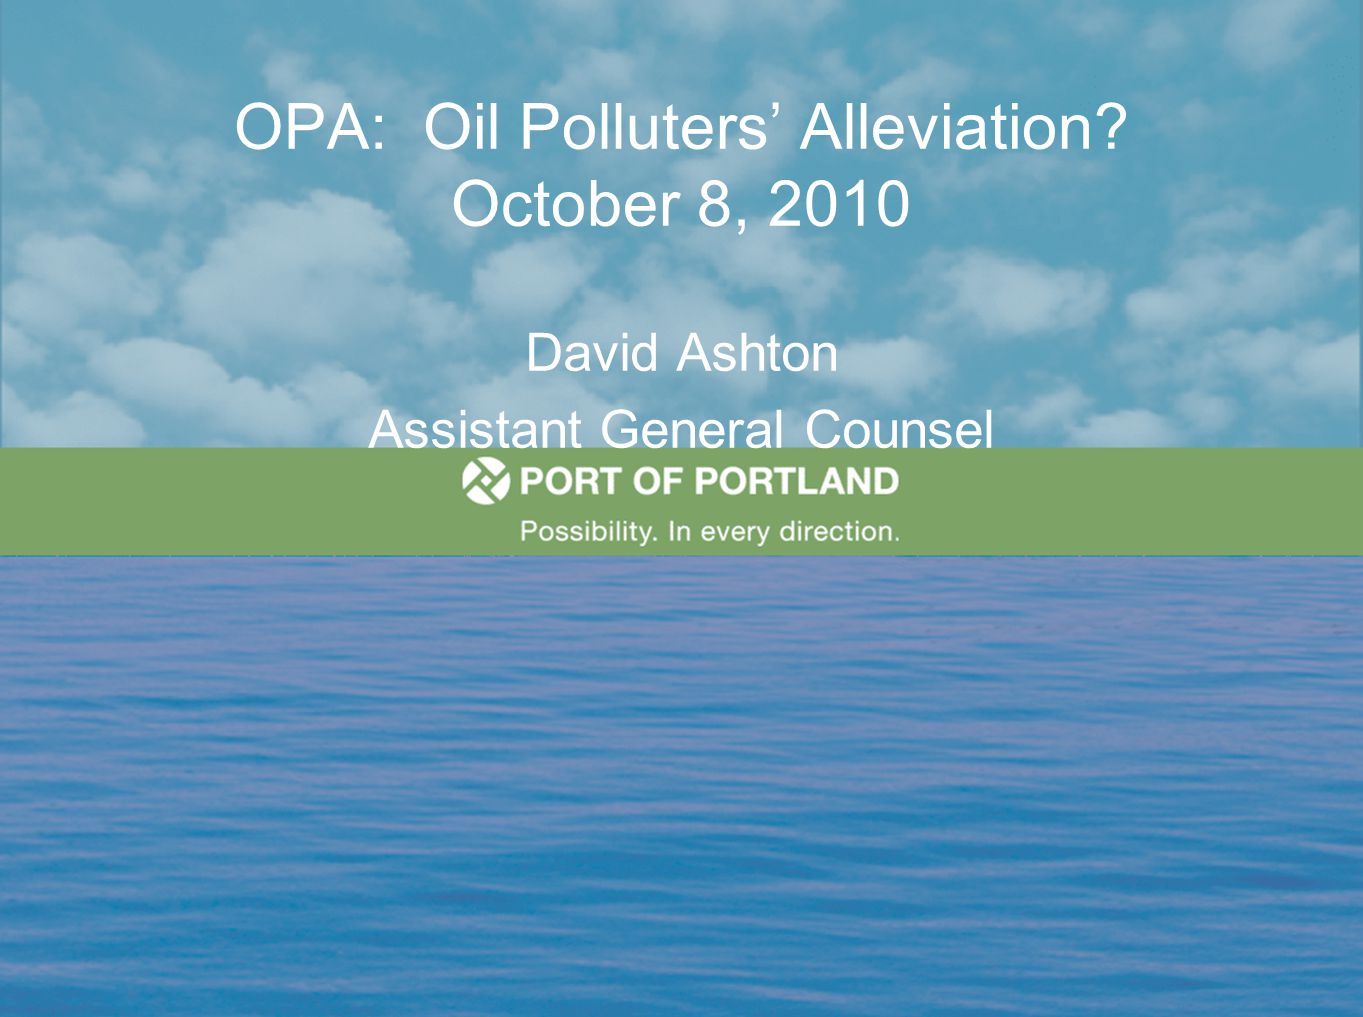 OPA: Oil Polluters' Alleviation? October 8, 2010 David Ashton Assistant General Counsel